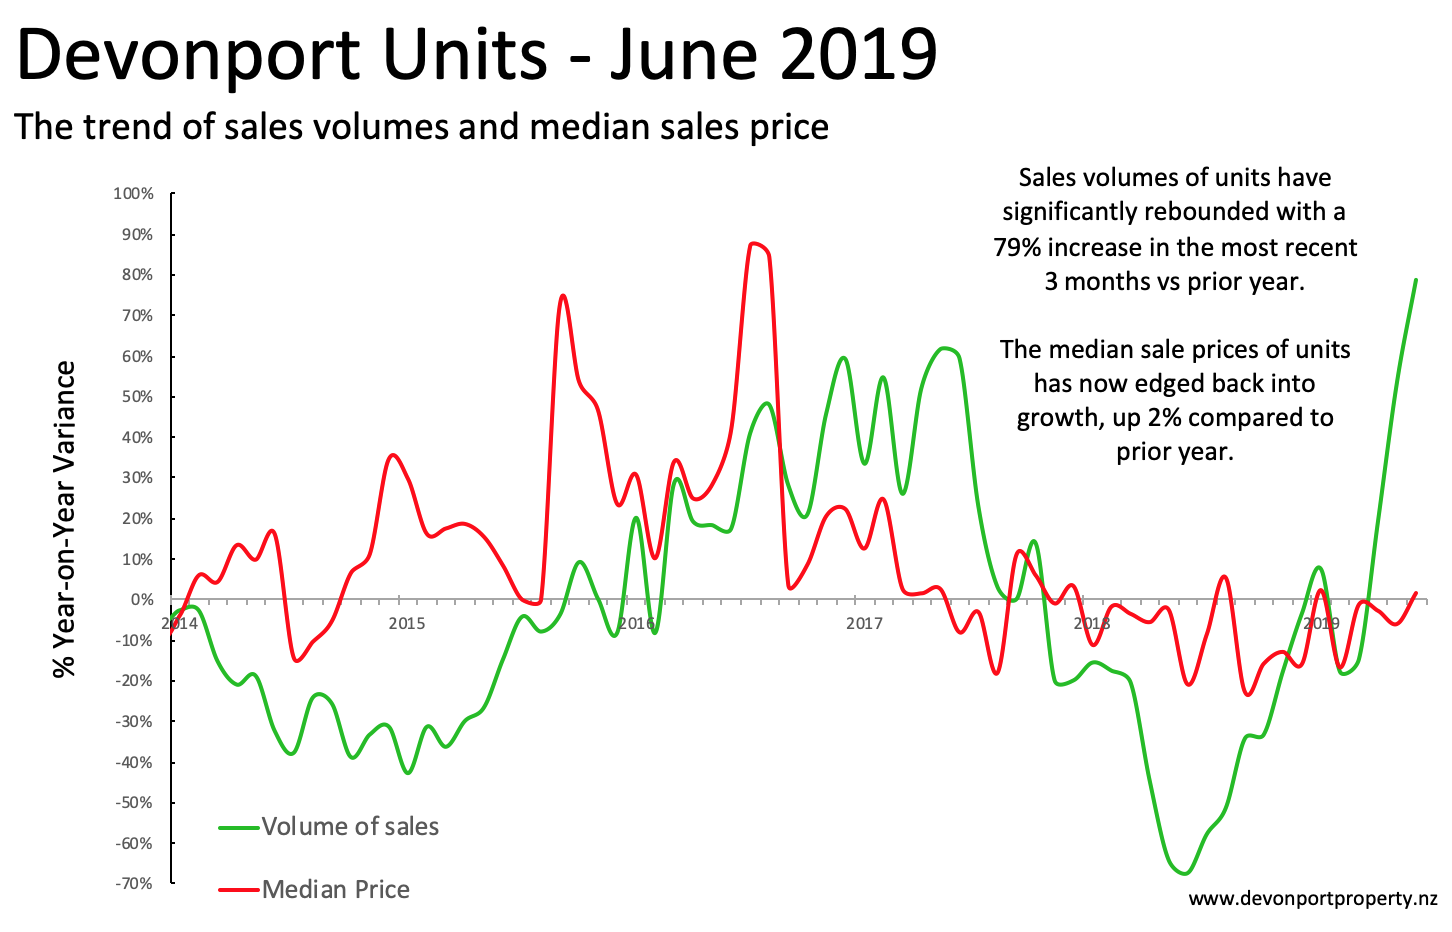 Devonport Property June 2019 Units variance of sales and price 3 MMA.png